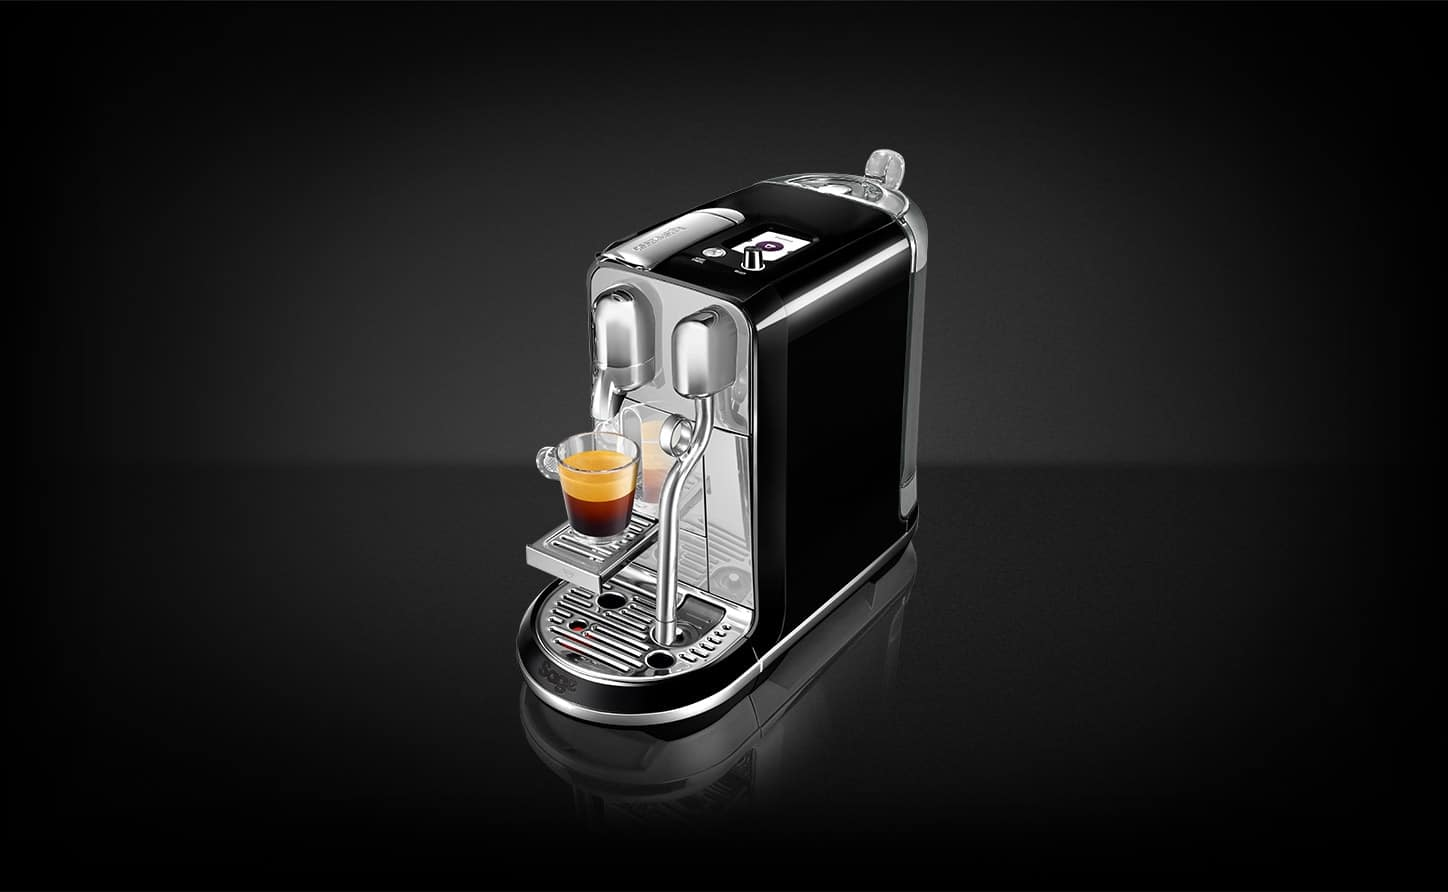 Coffee Maker and Espresso Machine Reviews by Coffee Survival